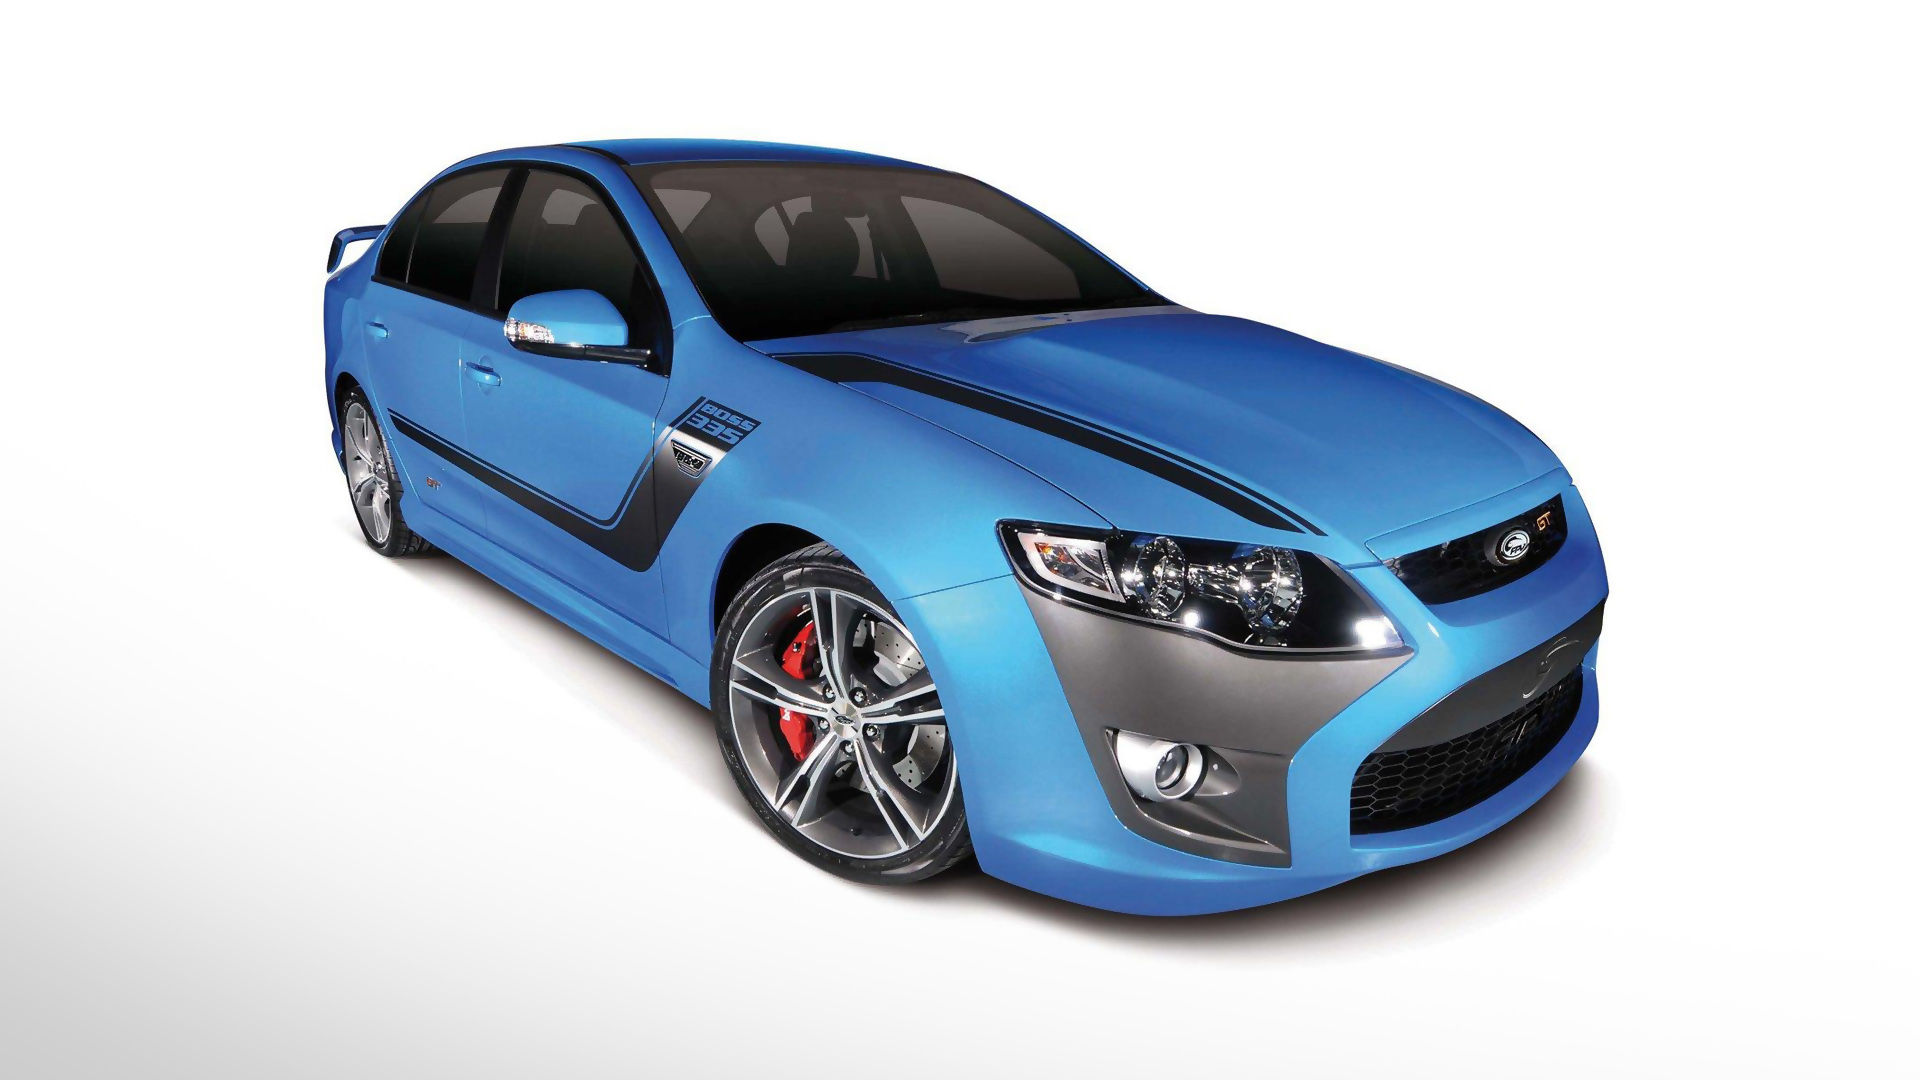 2011 Ford FPV GT